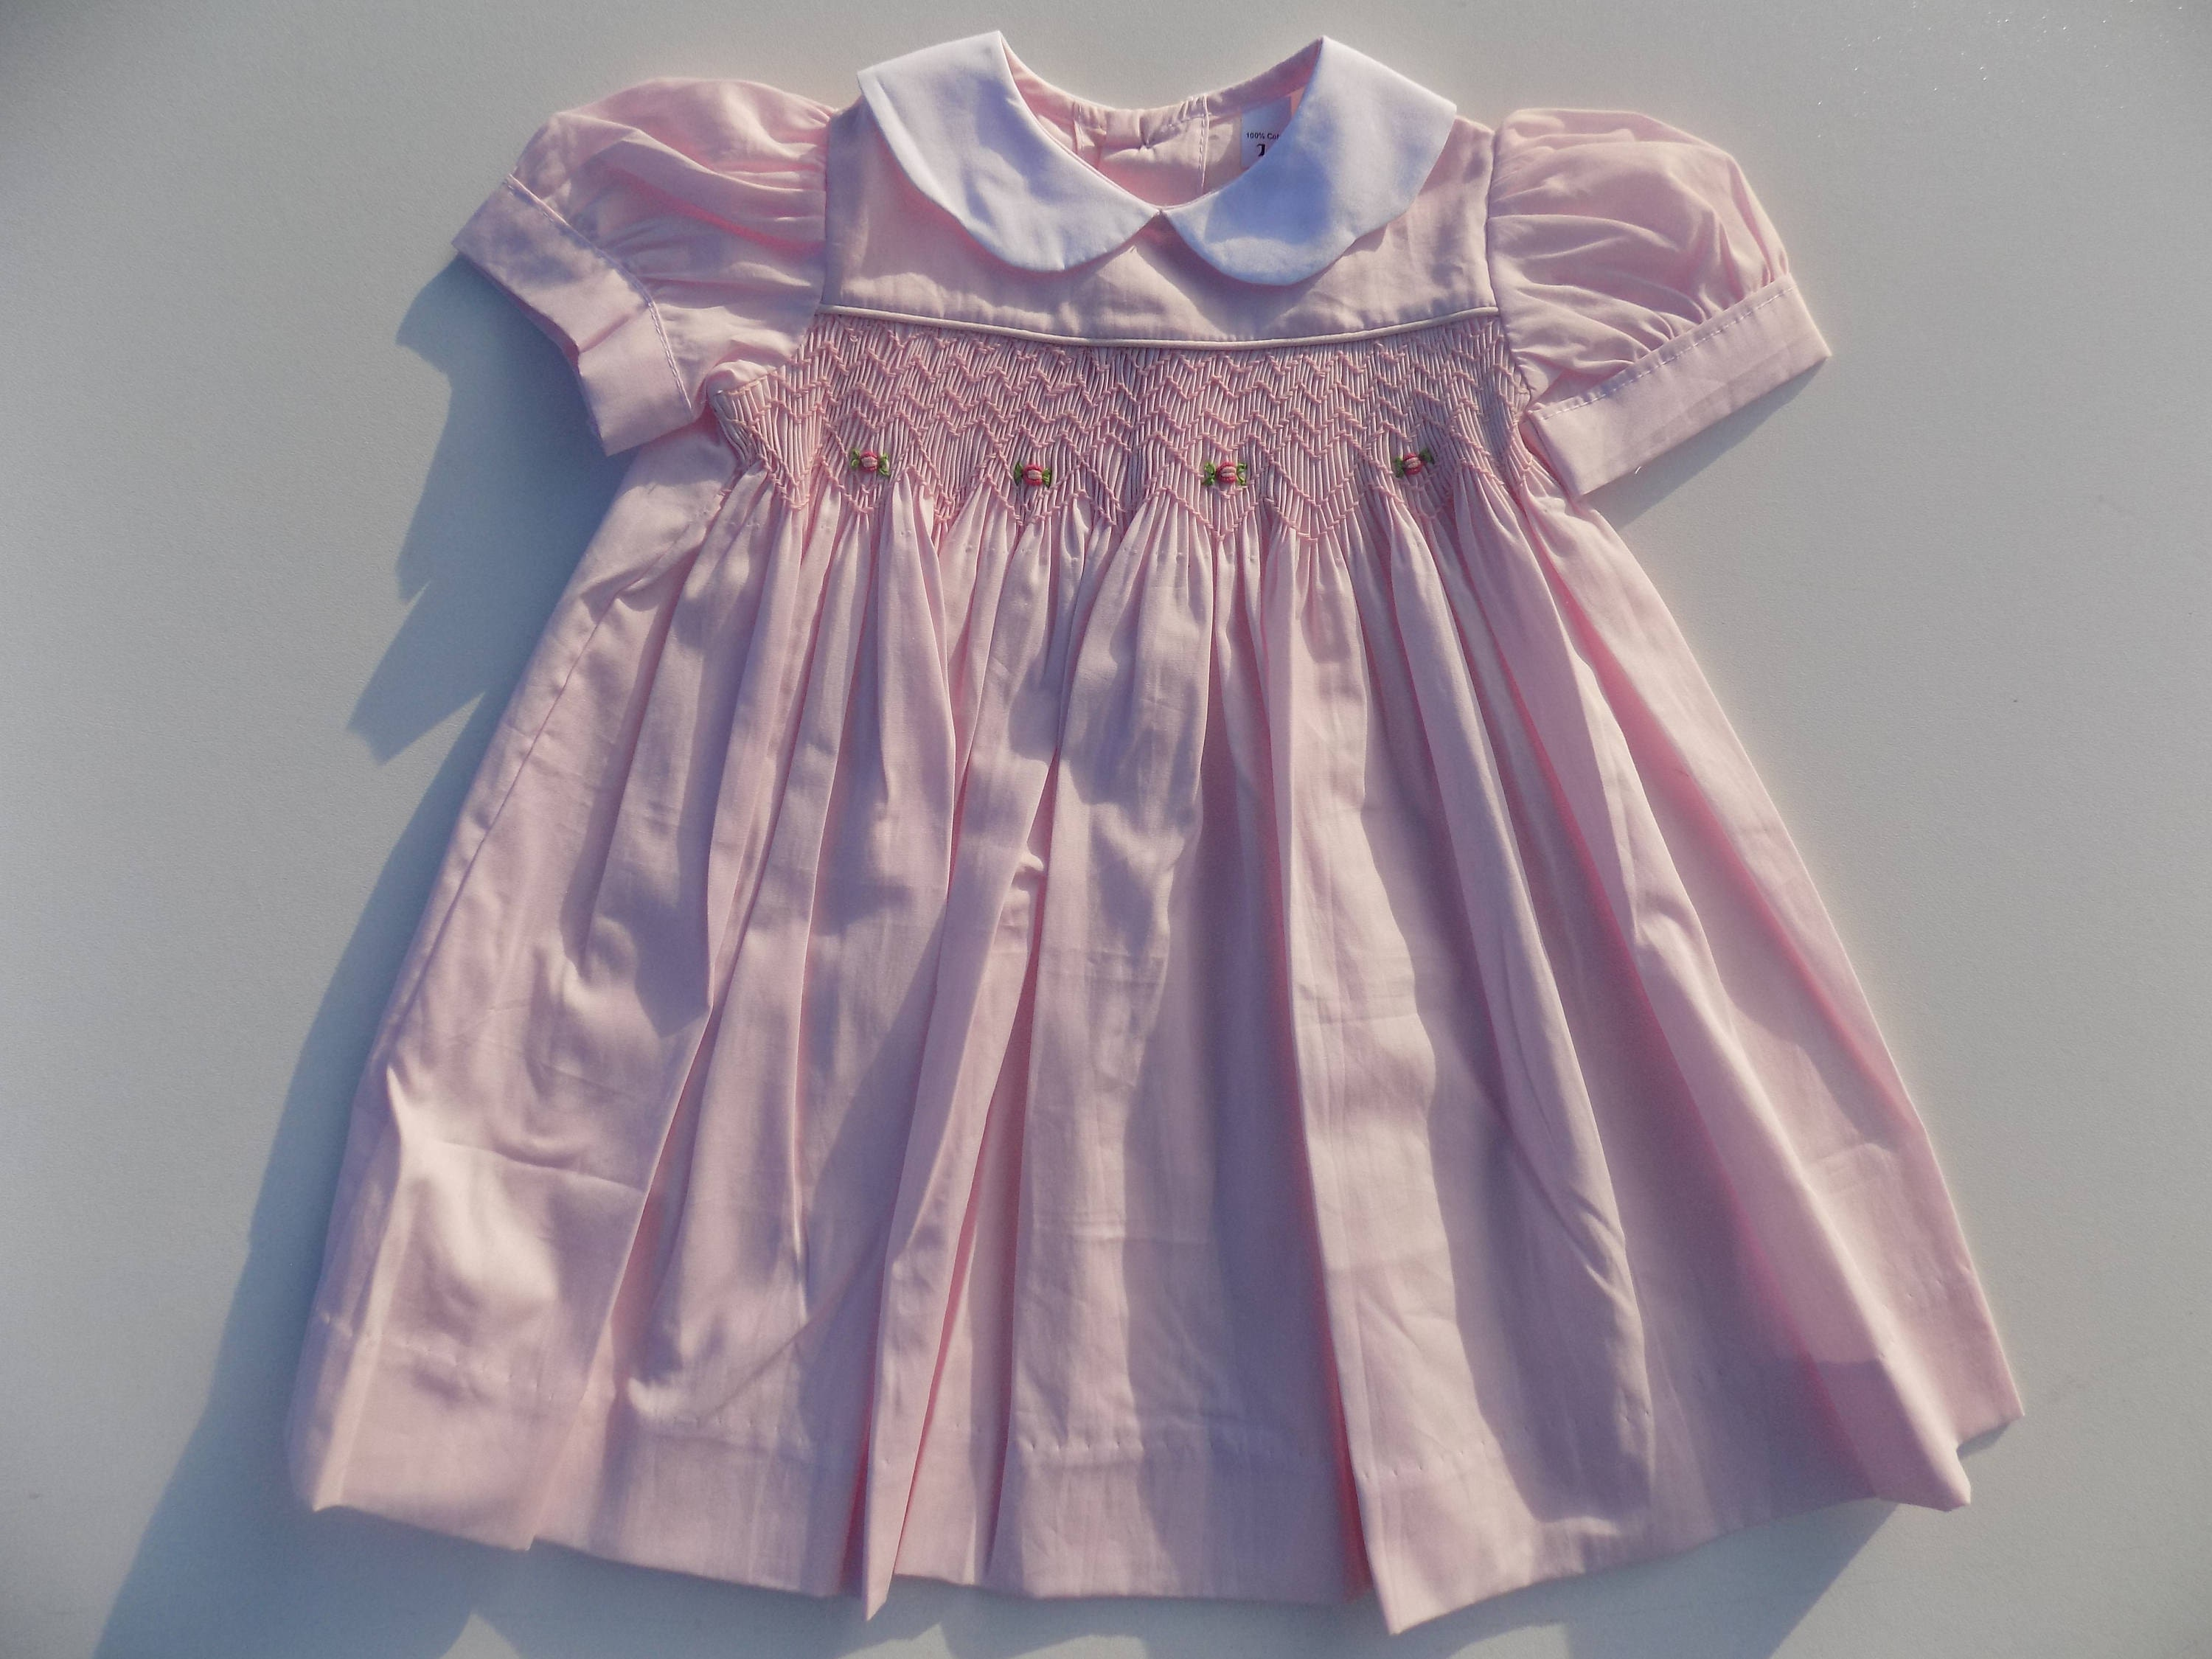 a643f2a3e20f6 Dresses smocked dress for girl, pink, 100% cotton dress, white collar,  puffed sleeves, pink, hand-embroidered smocked dress Christmas, Easter,  birthday, ...